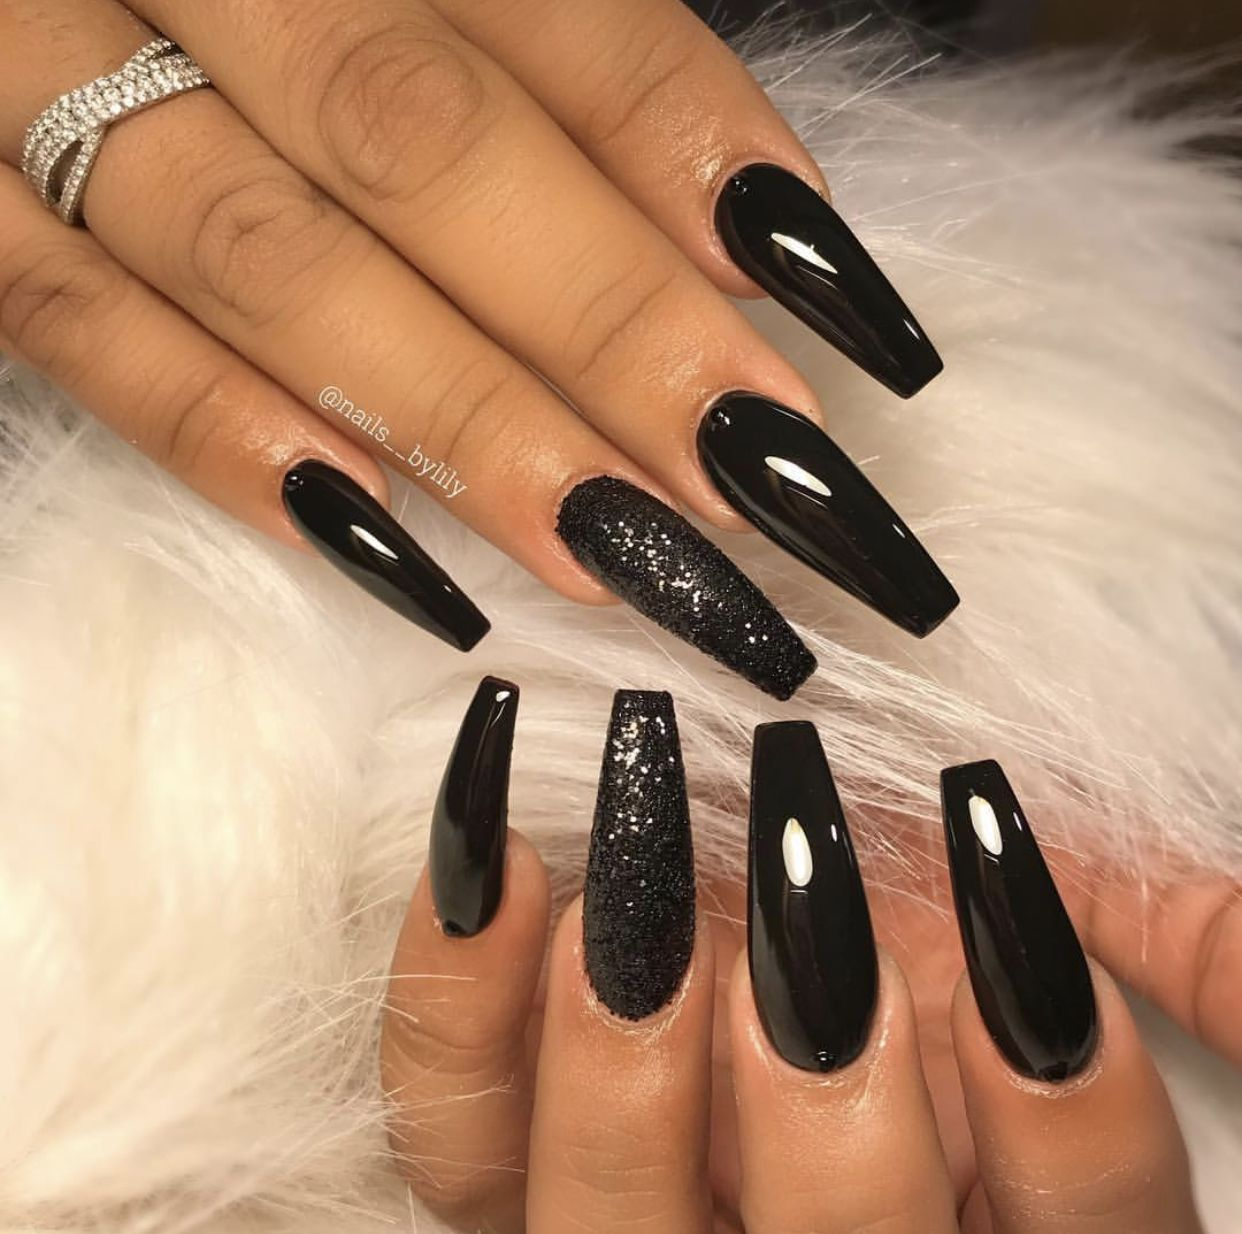 Theglitternail Get Inspired Long Black Coffin Nails With Chrome Effect And Glitter P Black Coffin Nails Black Nail Designs Coffin Nails Designs